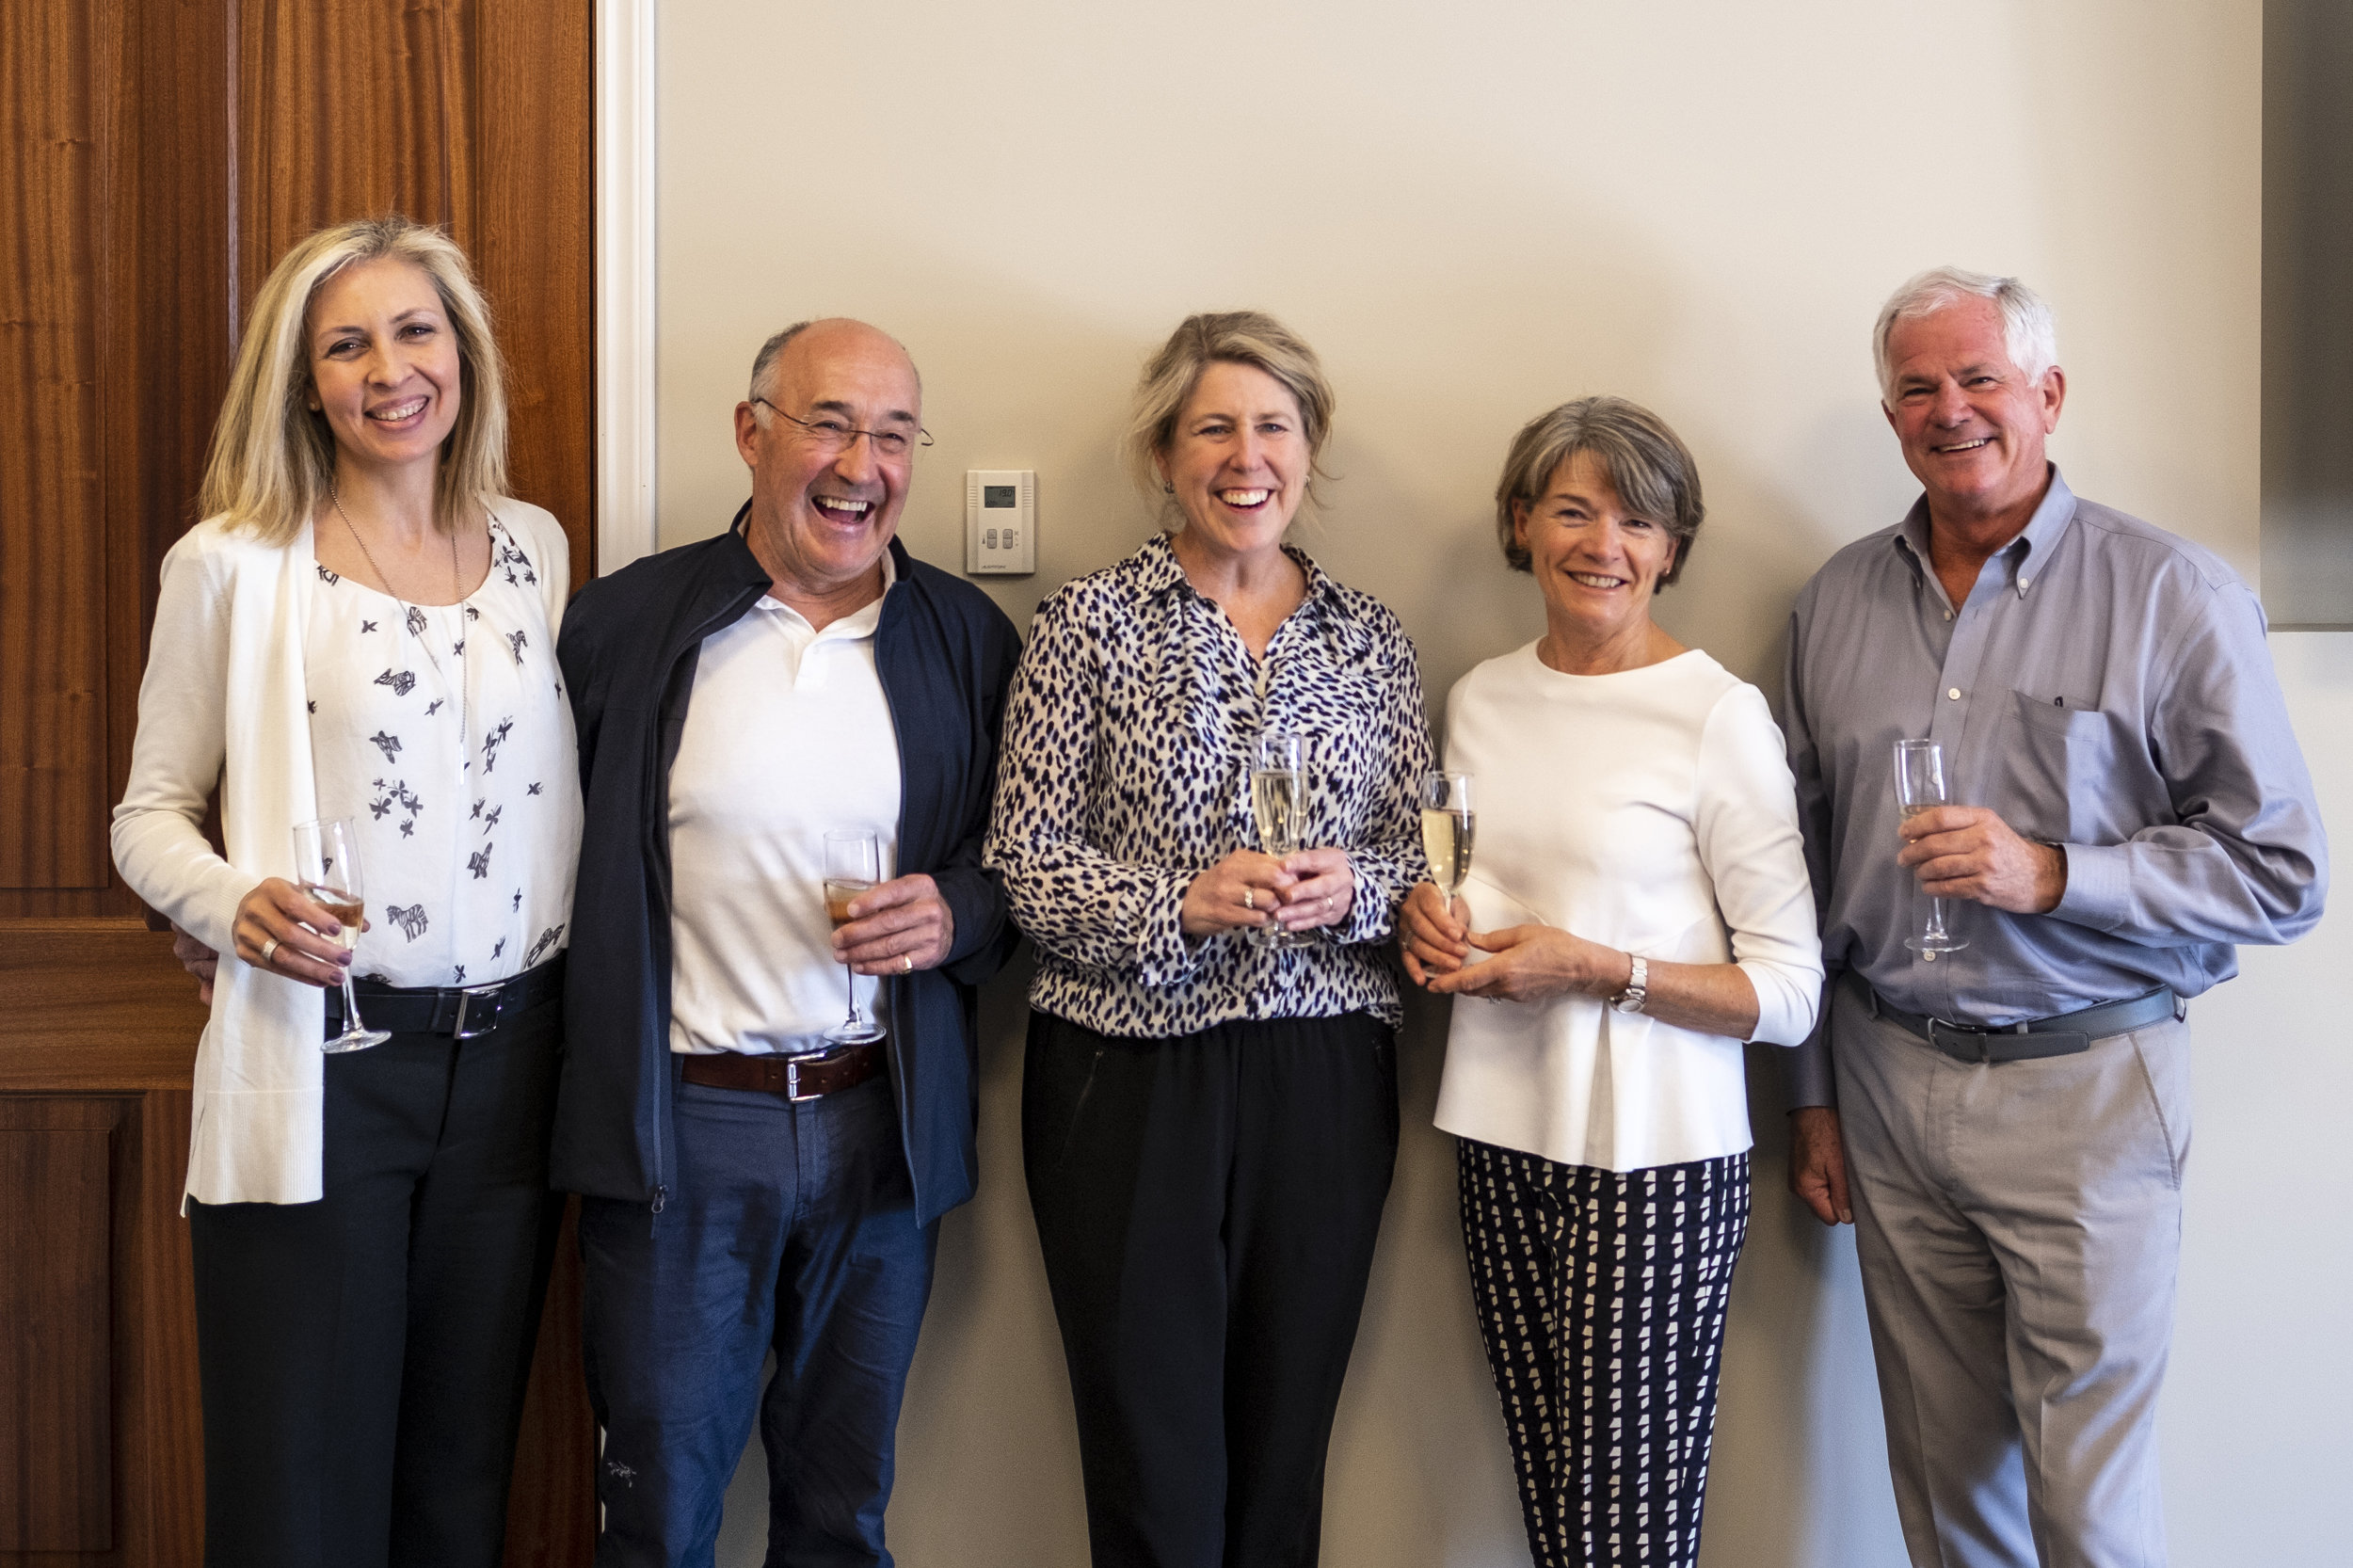 Left to right:  LCS Board Chair Nicole Bendaly '93; John Hepburn '68; Head of School and Foundation Anne-Marie Kee; Jane Hepburn; and LCS Foundation Board Chair Jock Fleming